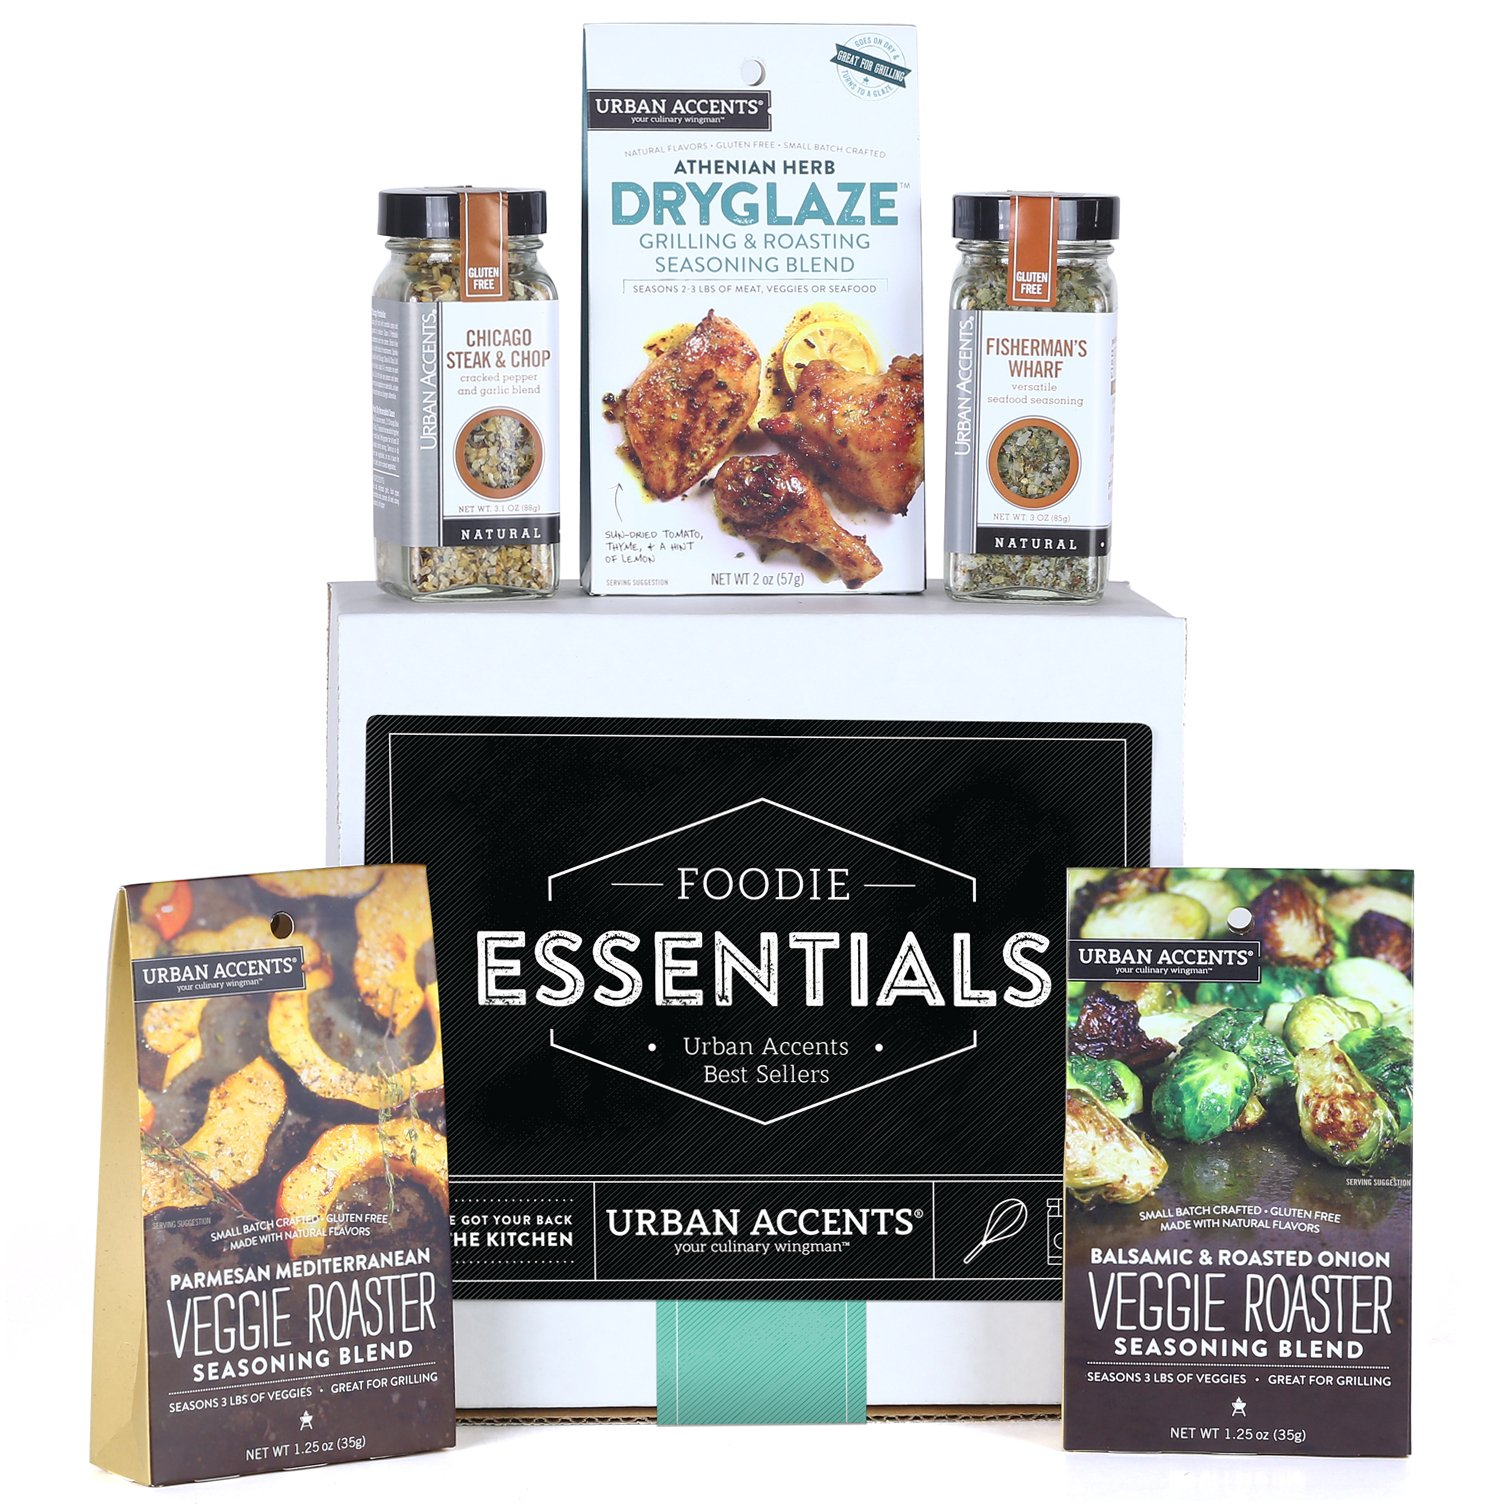 Urban Accents FOODIE ESSENTIALS, Gourmet Gift Set, A Collection of Spices, Veggie Roasters and Dryglazes, Perfect for Weddings, Housewarmings or Any Occasion by Urban Accents (Image #1)